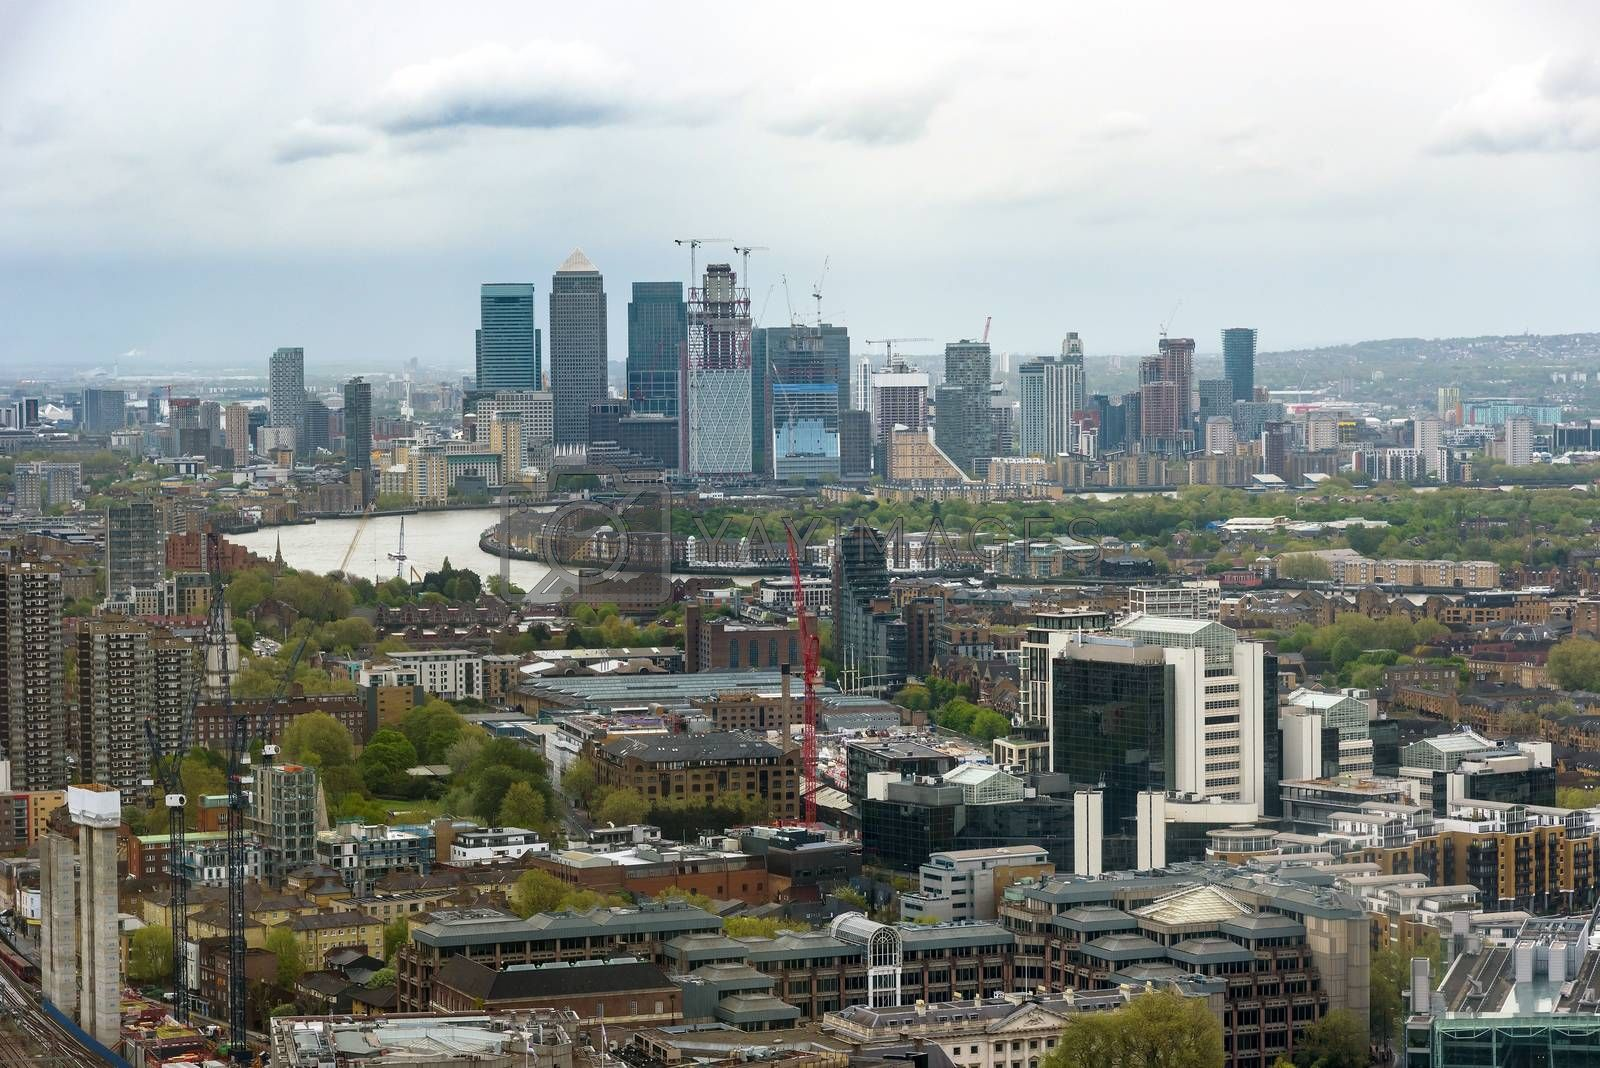 Skyline of eastern London with skyscrapers in the docklands